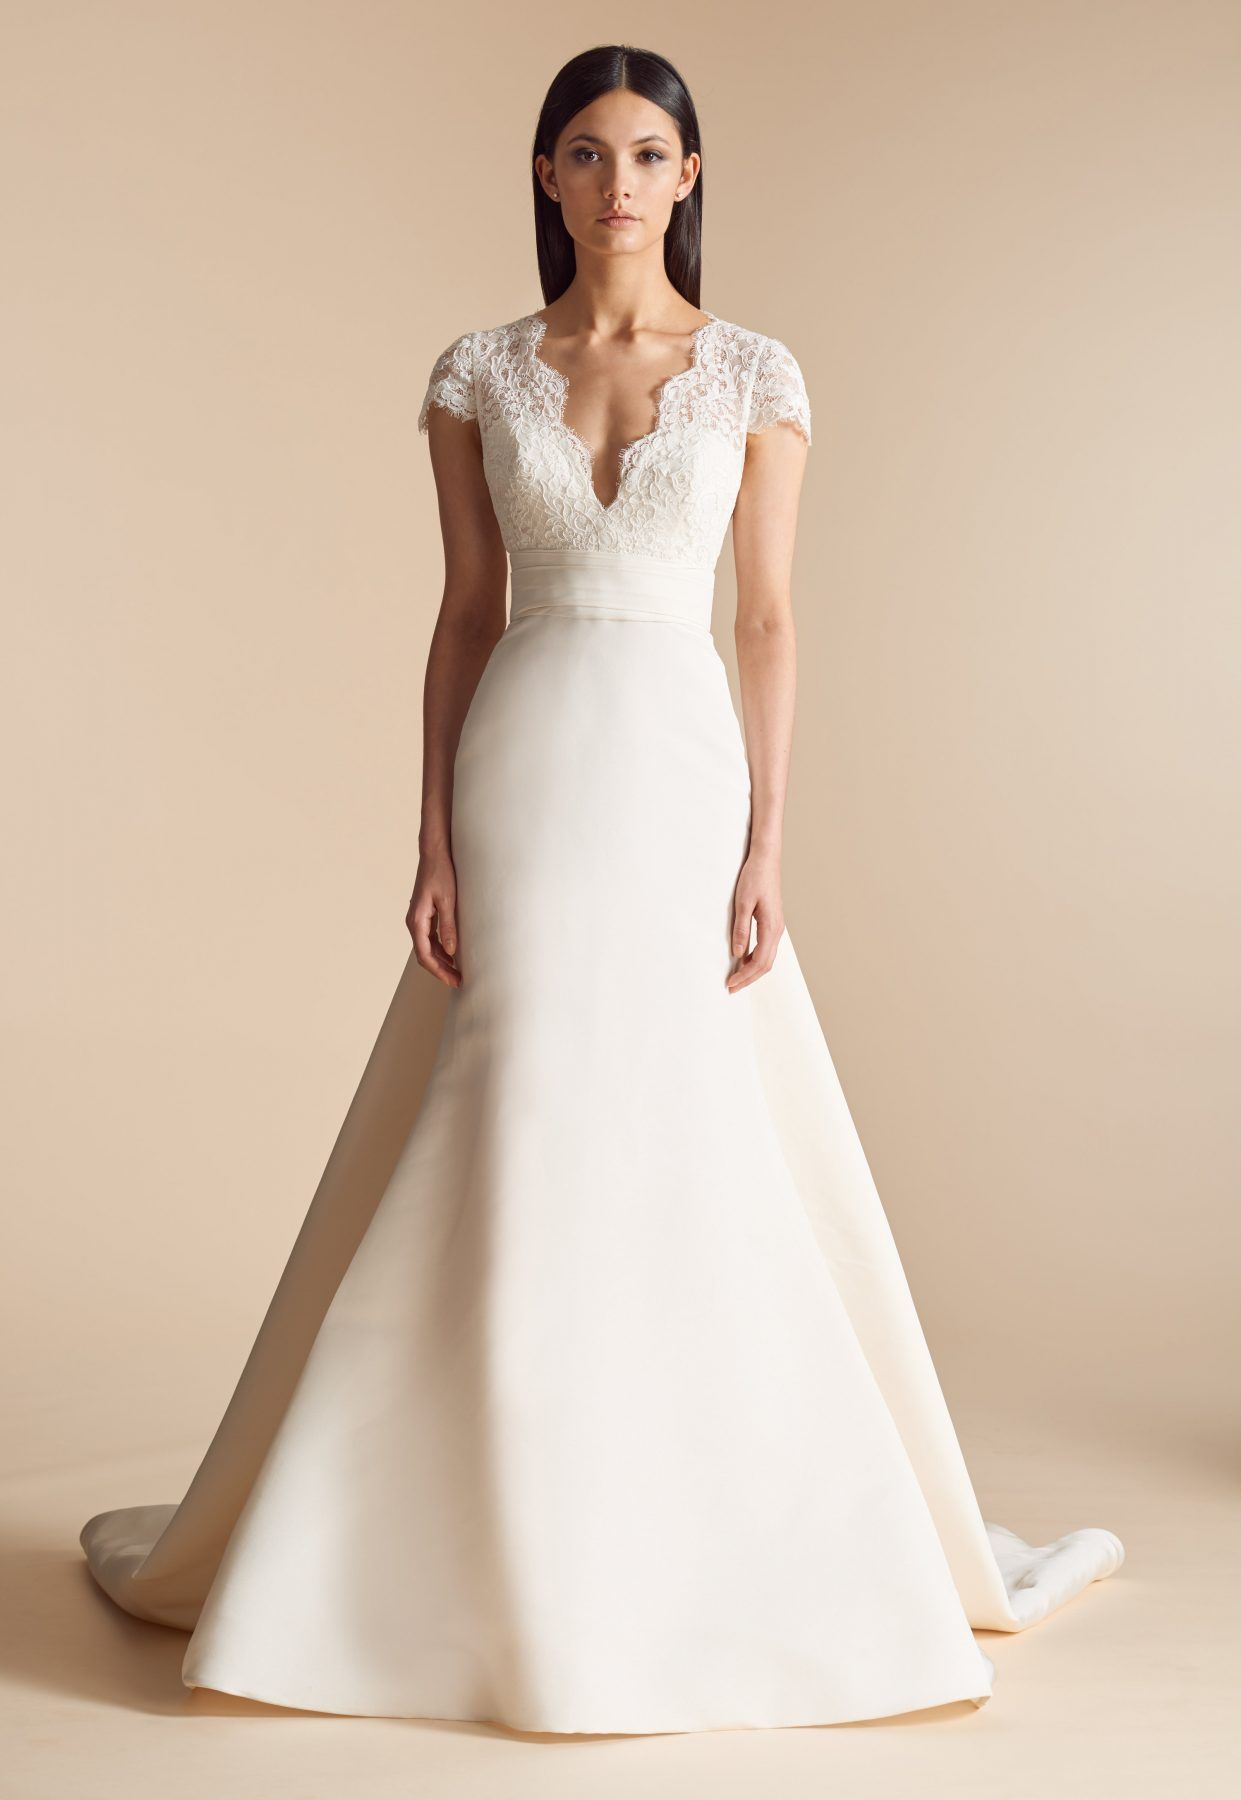 Fit And Flare Wedding Dress With Lace Bodice And V Neckline